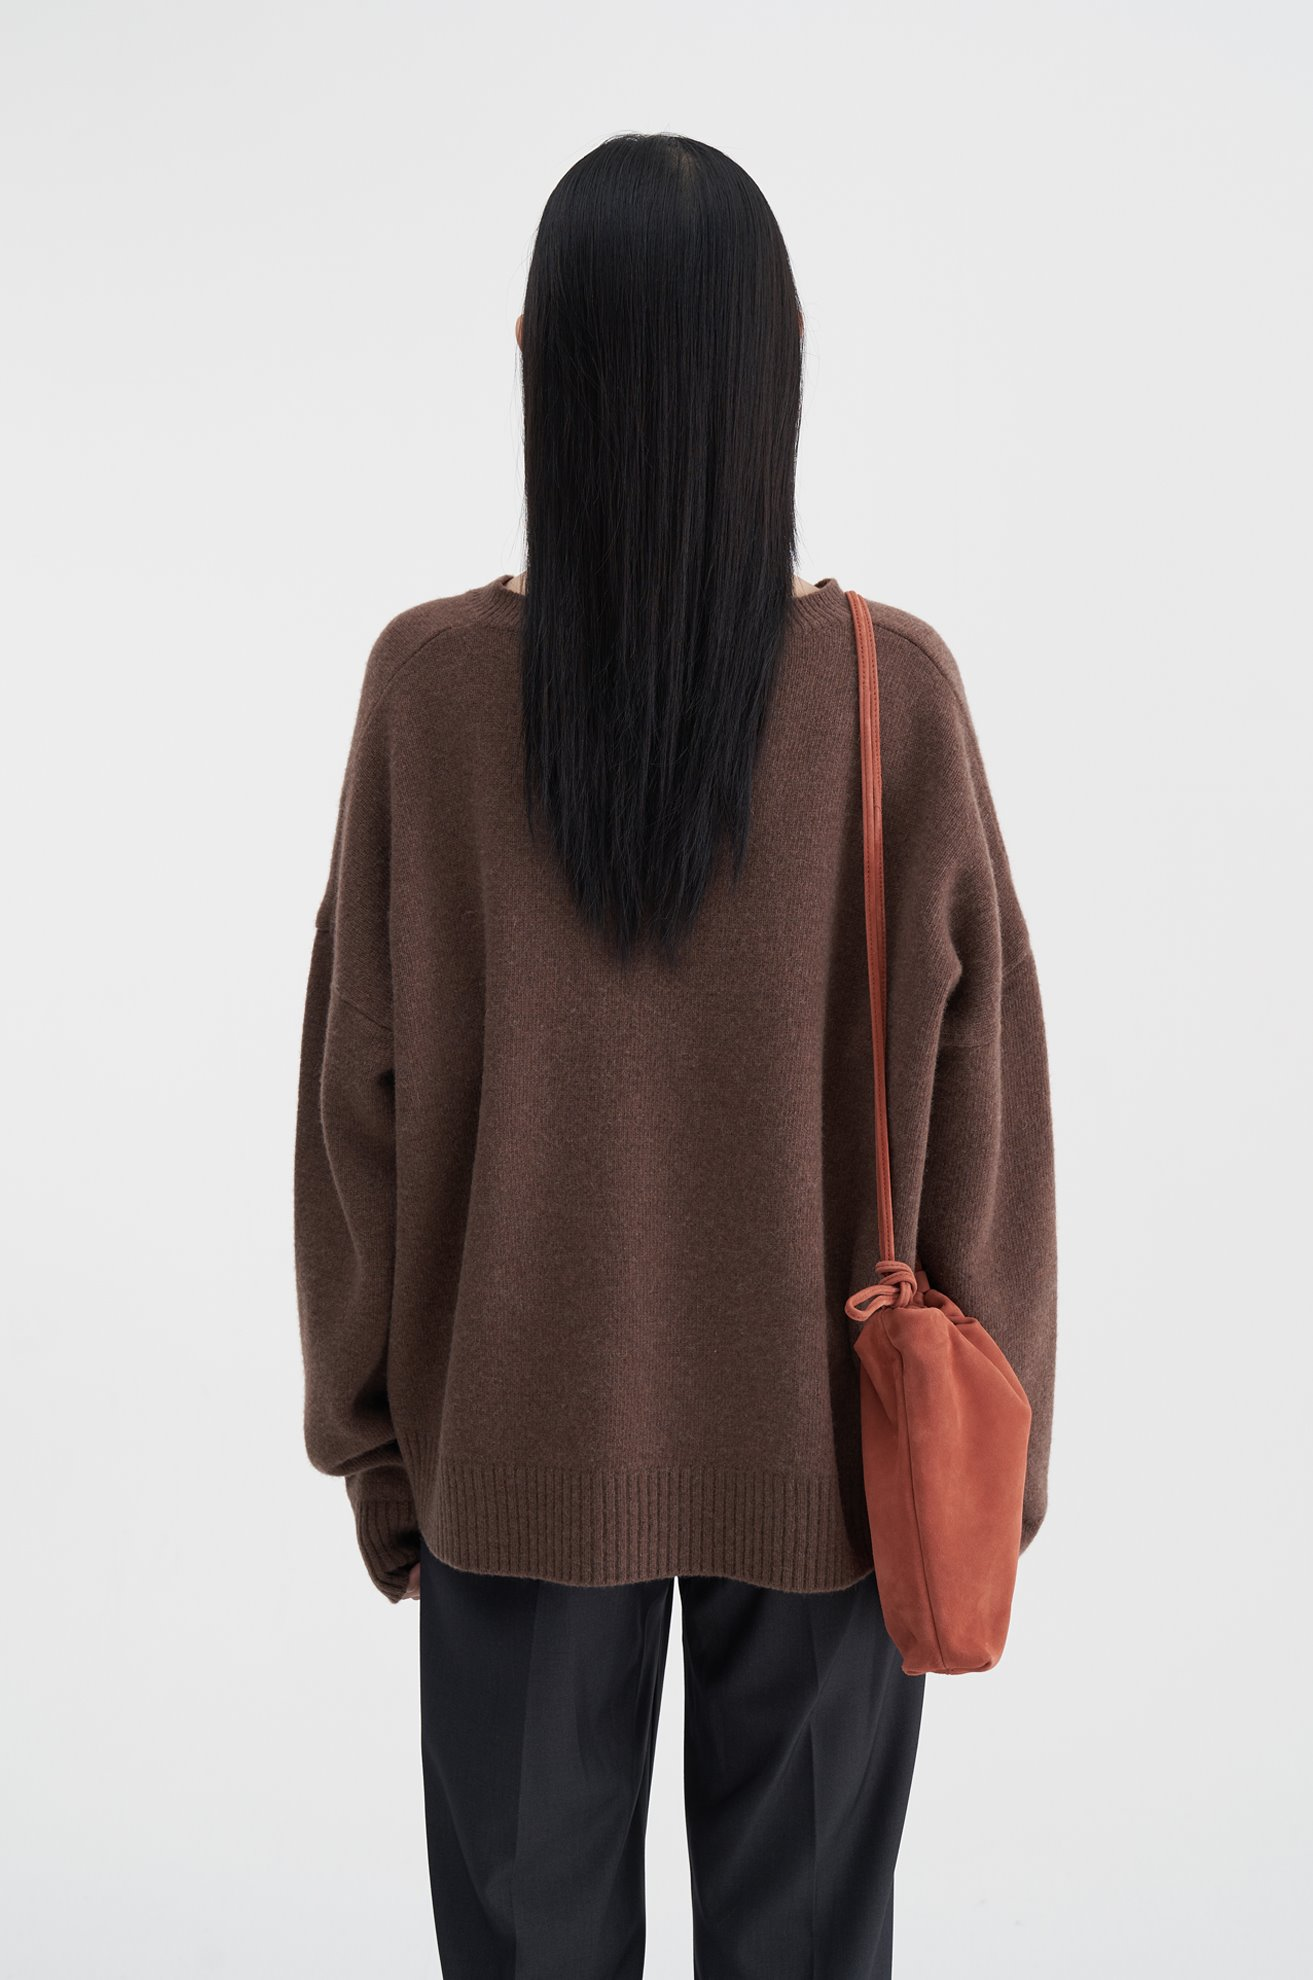 Cashmere Vneck Sweater (BROWN)ATELIER EDITION